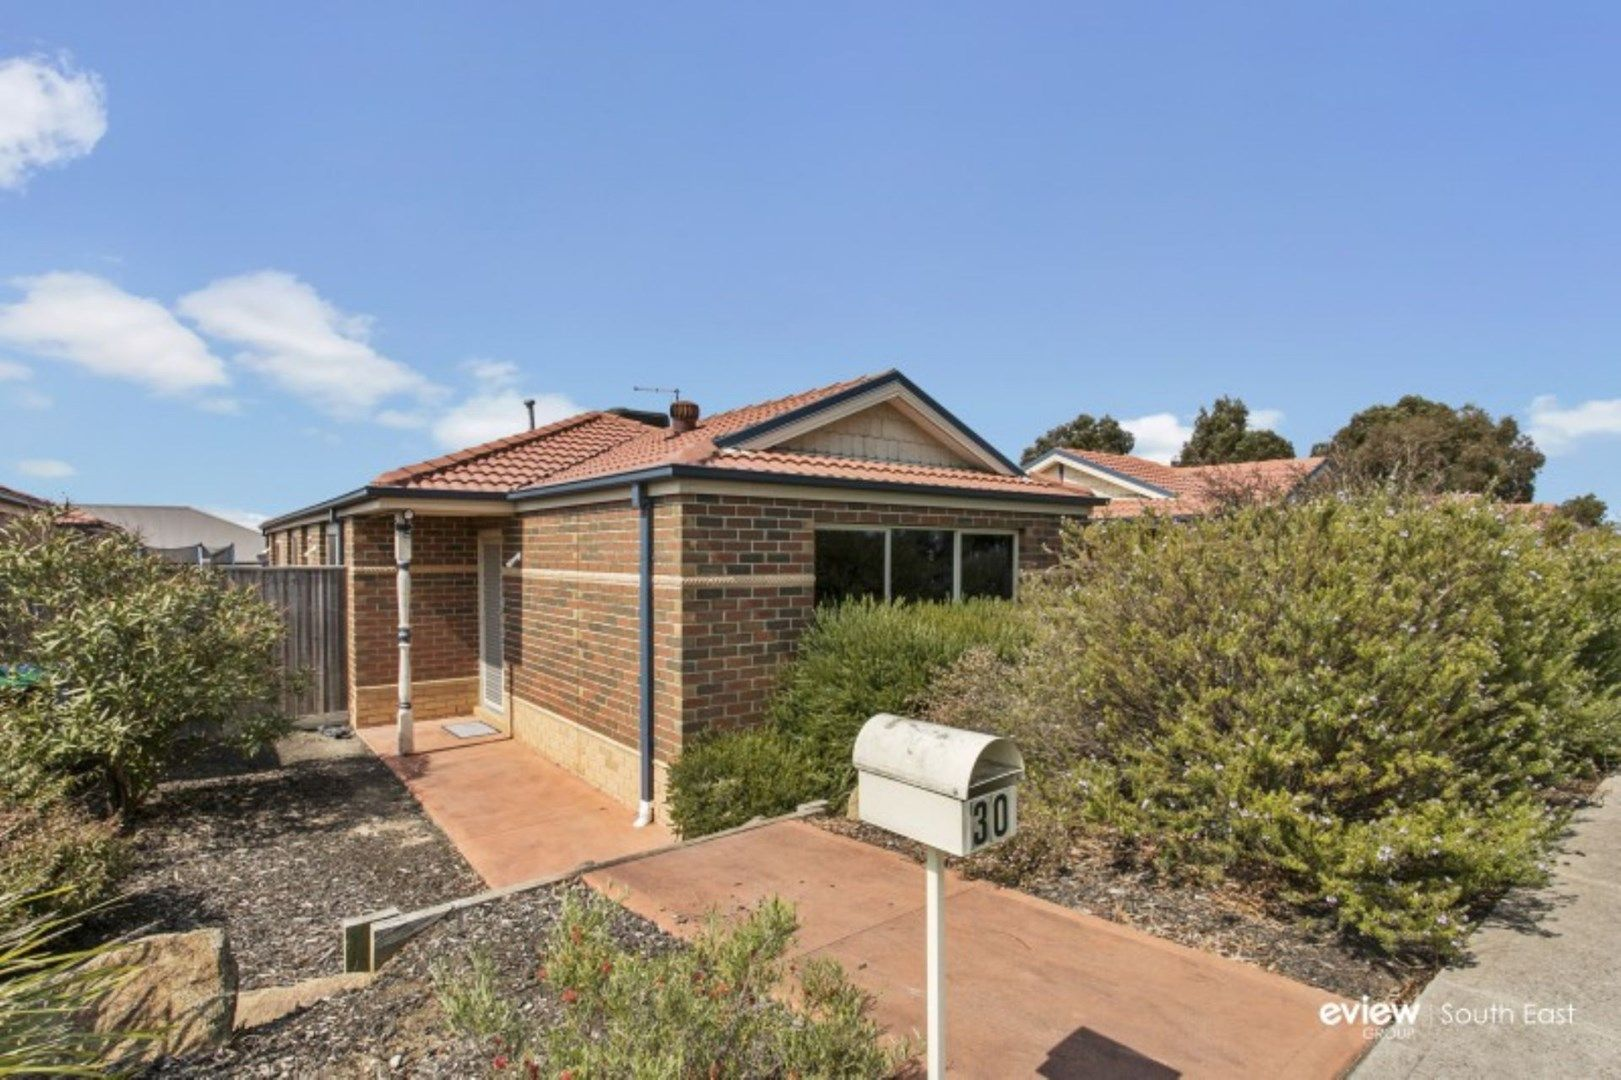 30 Hawkeseye Way, Cranbourne East VIC 3977, Image 0